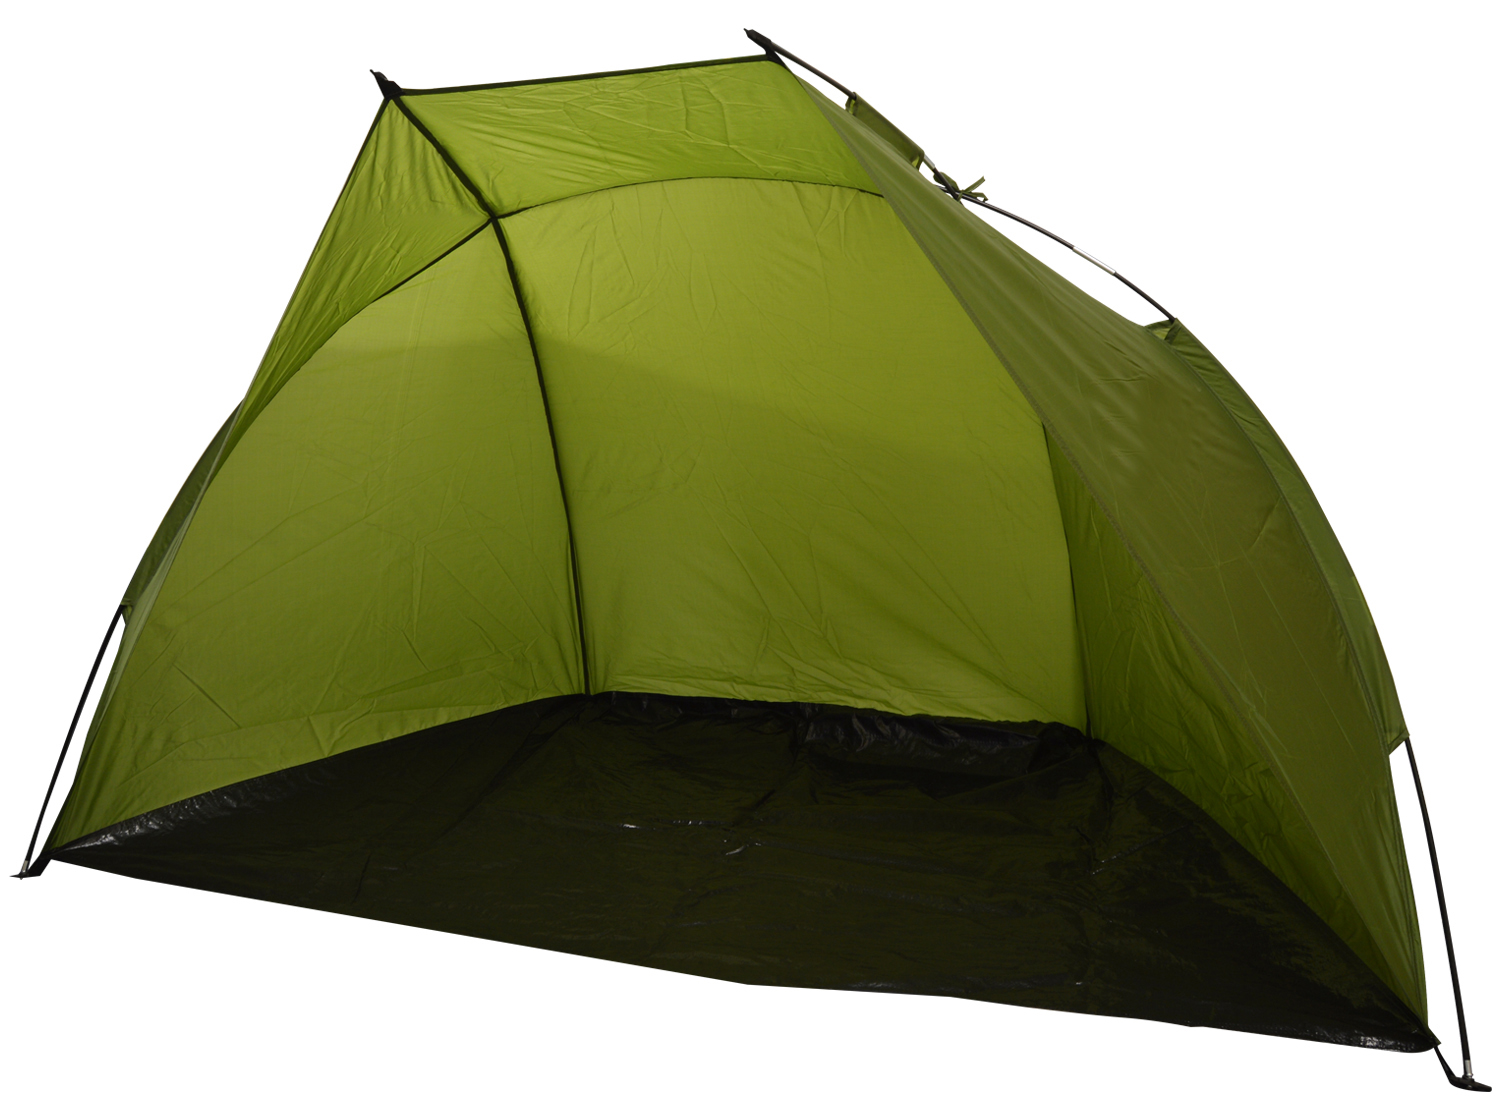 Fishing tent shelter bivvy olive green 1 2 person sea angling equipment ebay for Does olive garden give military discount